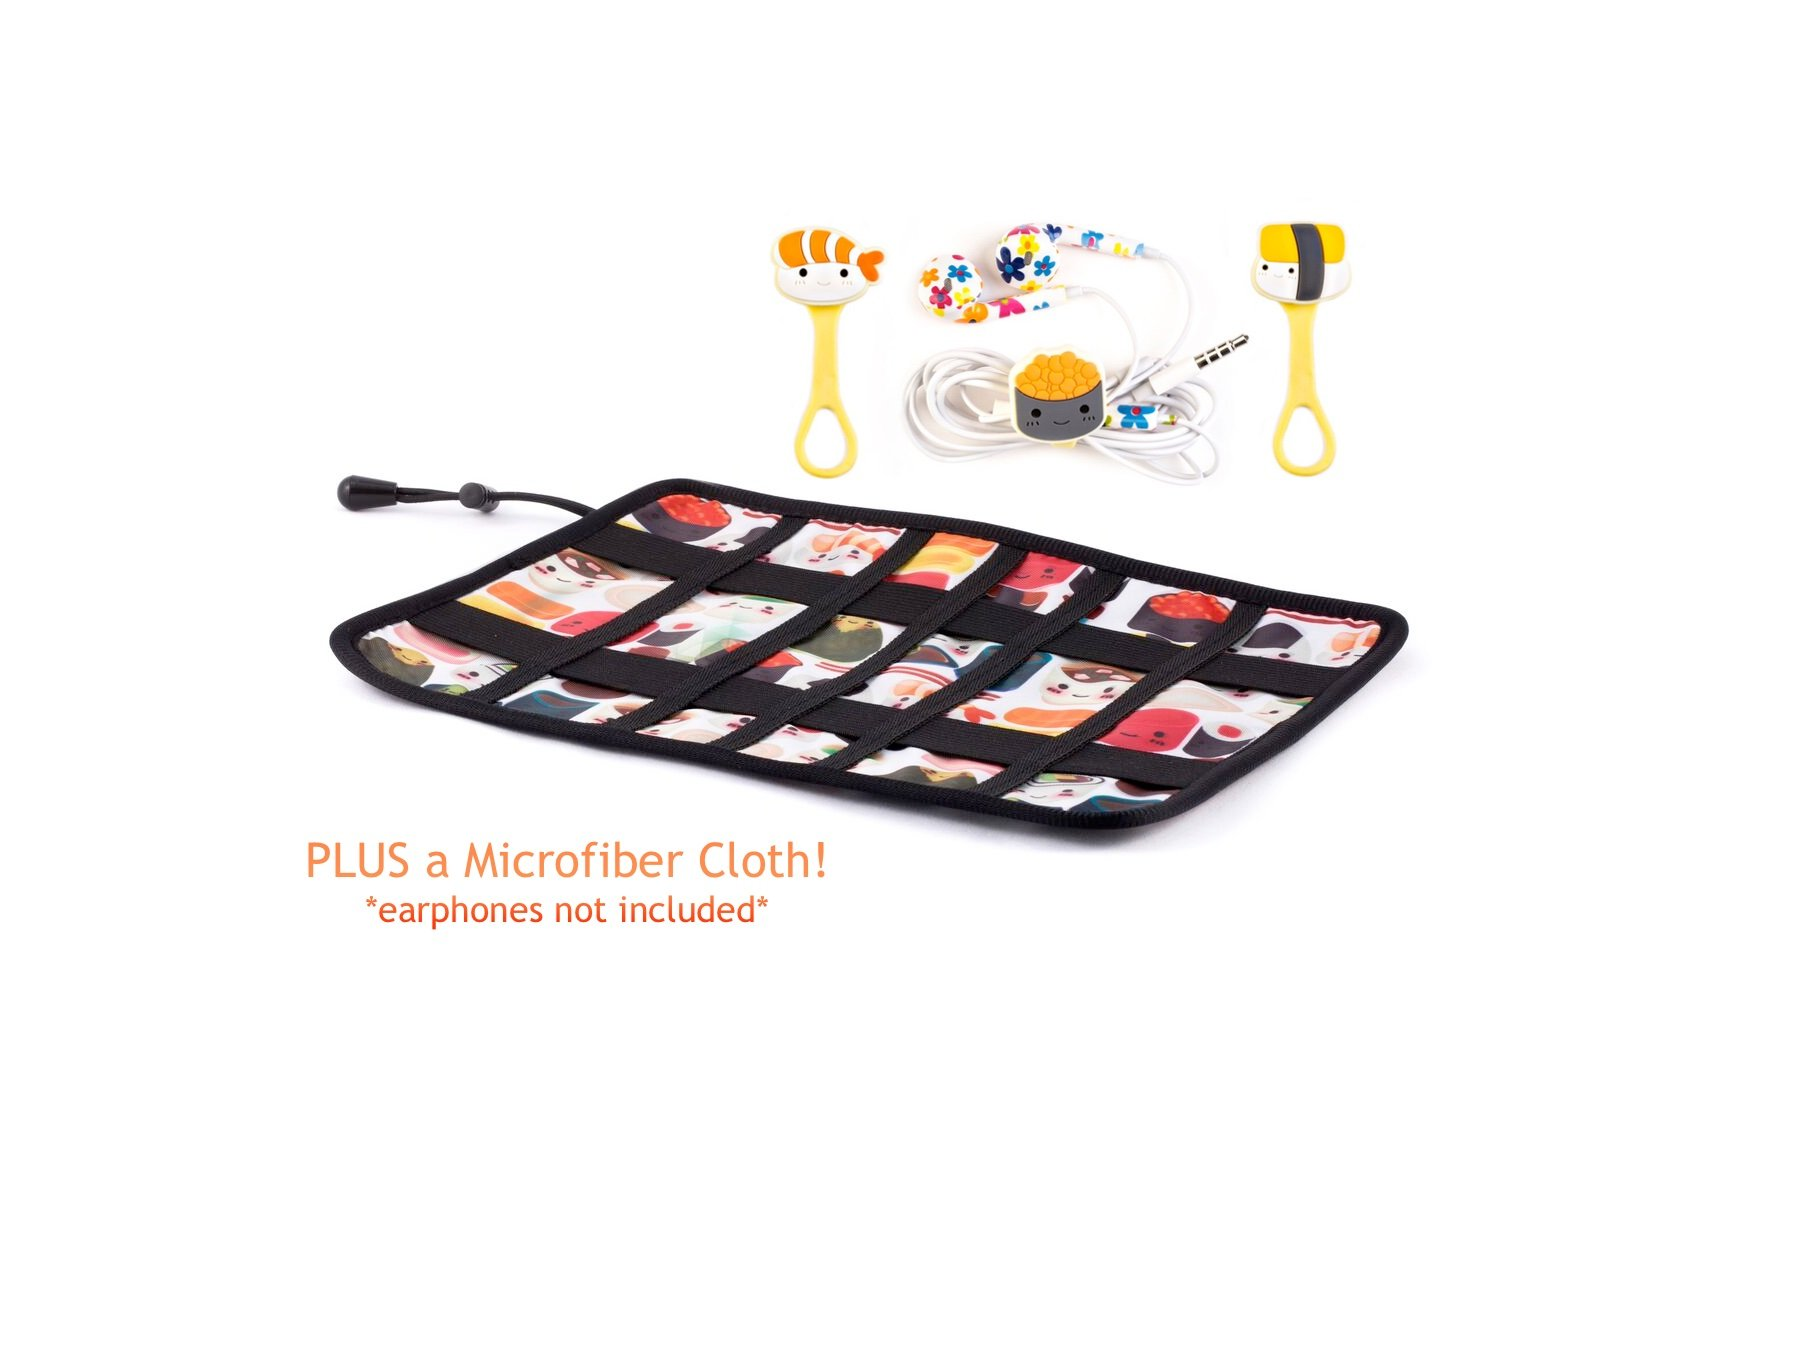 Traveling cord organizers with cord ties for cables, chargers, earphones, etc. Sushi